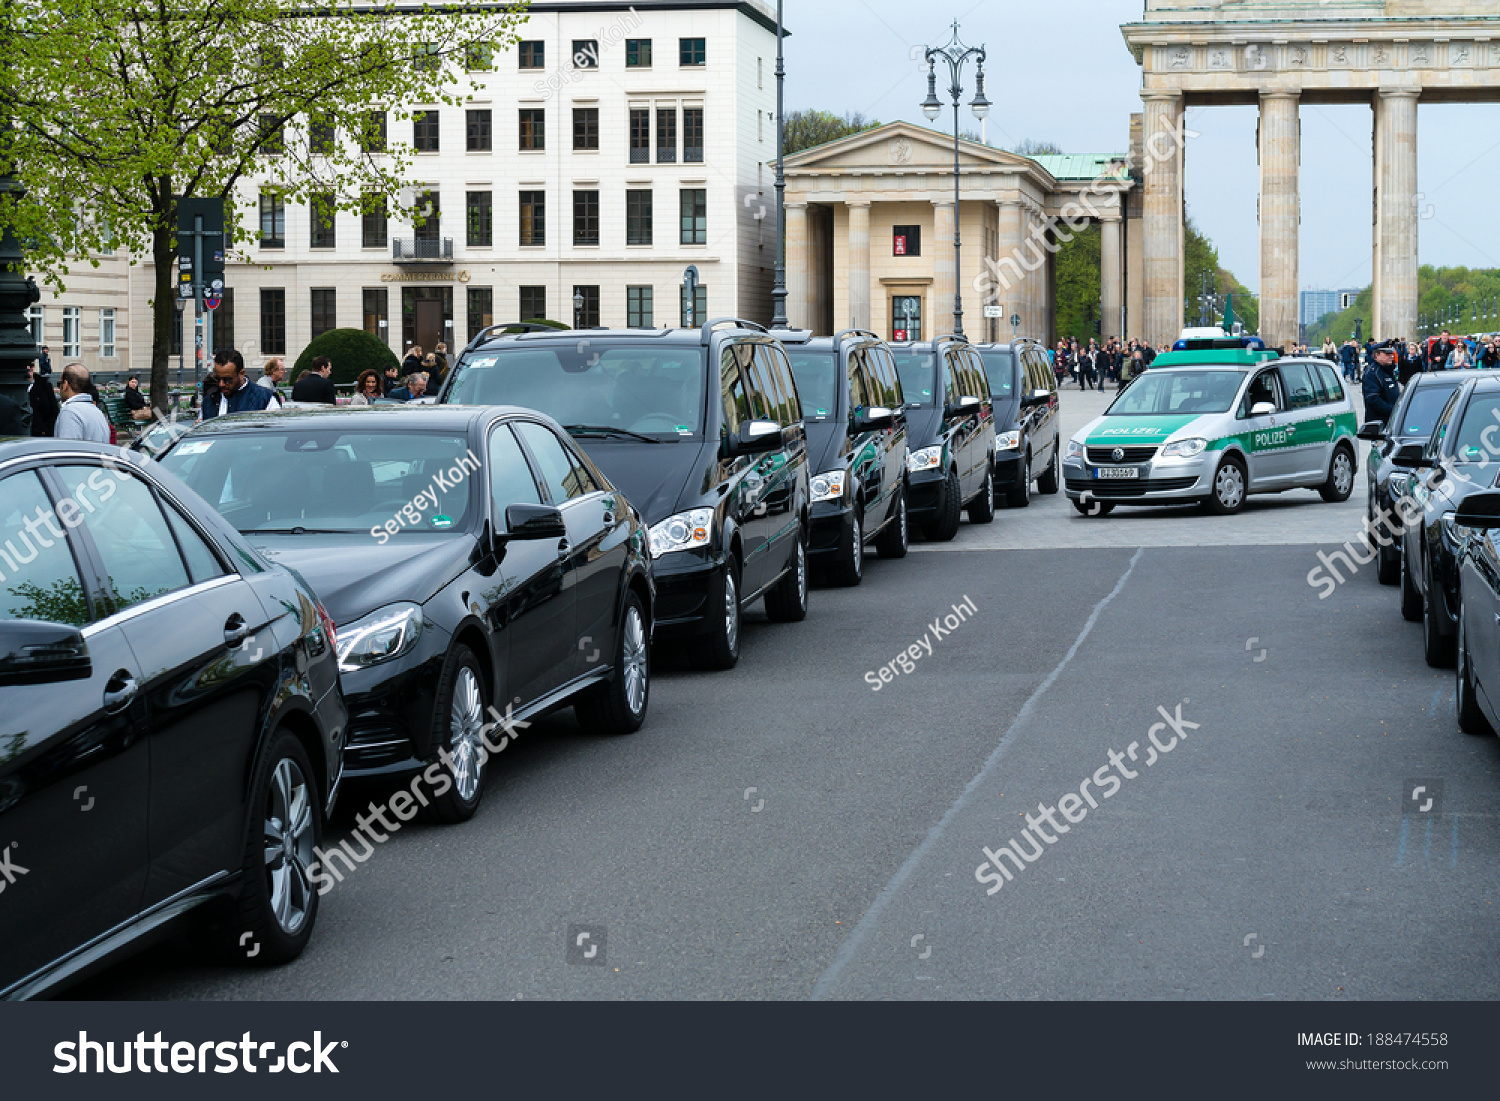 cf80253d35 BERLIN GERMANY APRIL 11 2014 Police Stock Photo (Edit Now) 188474558 ...